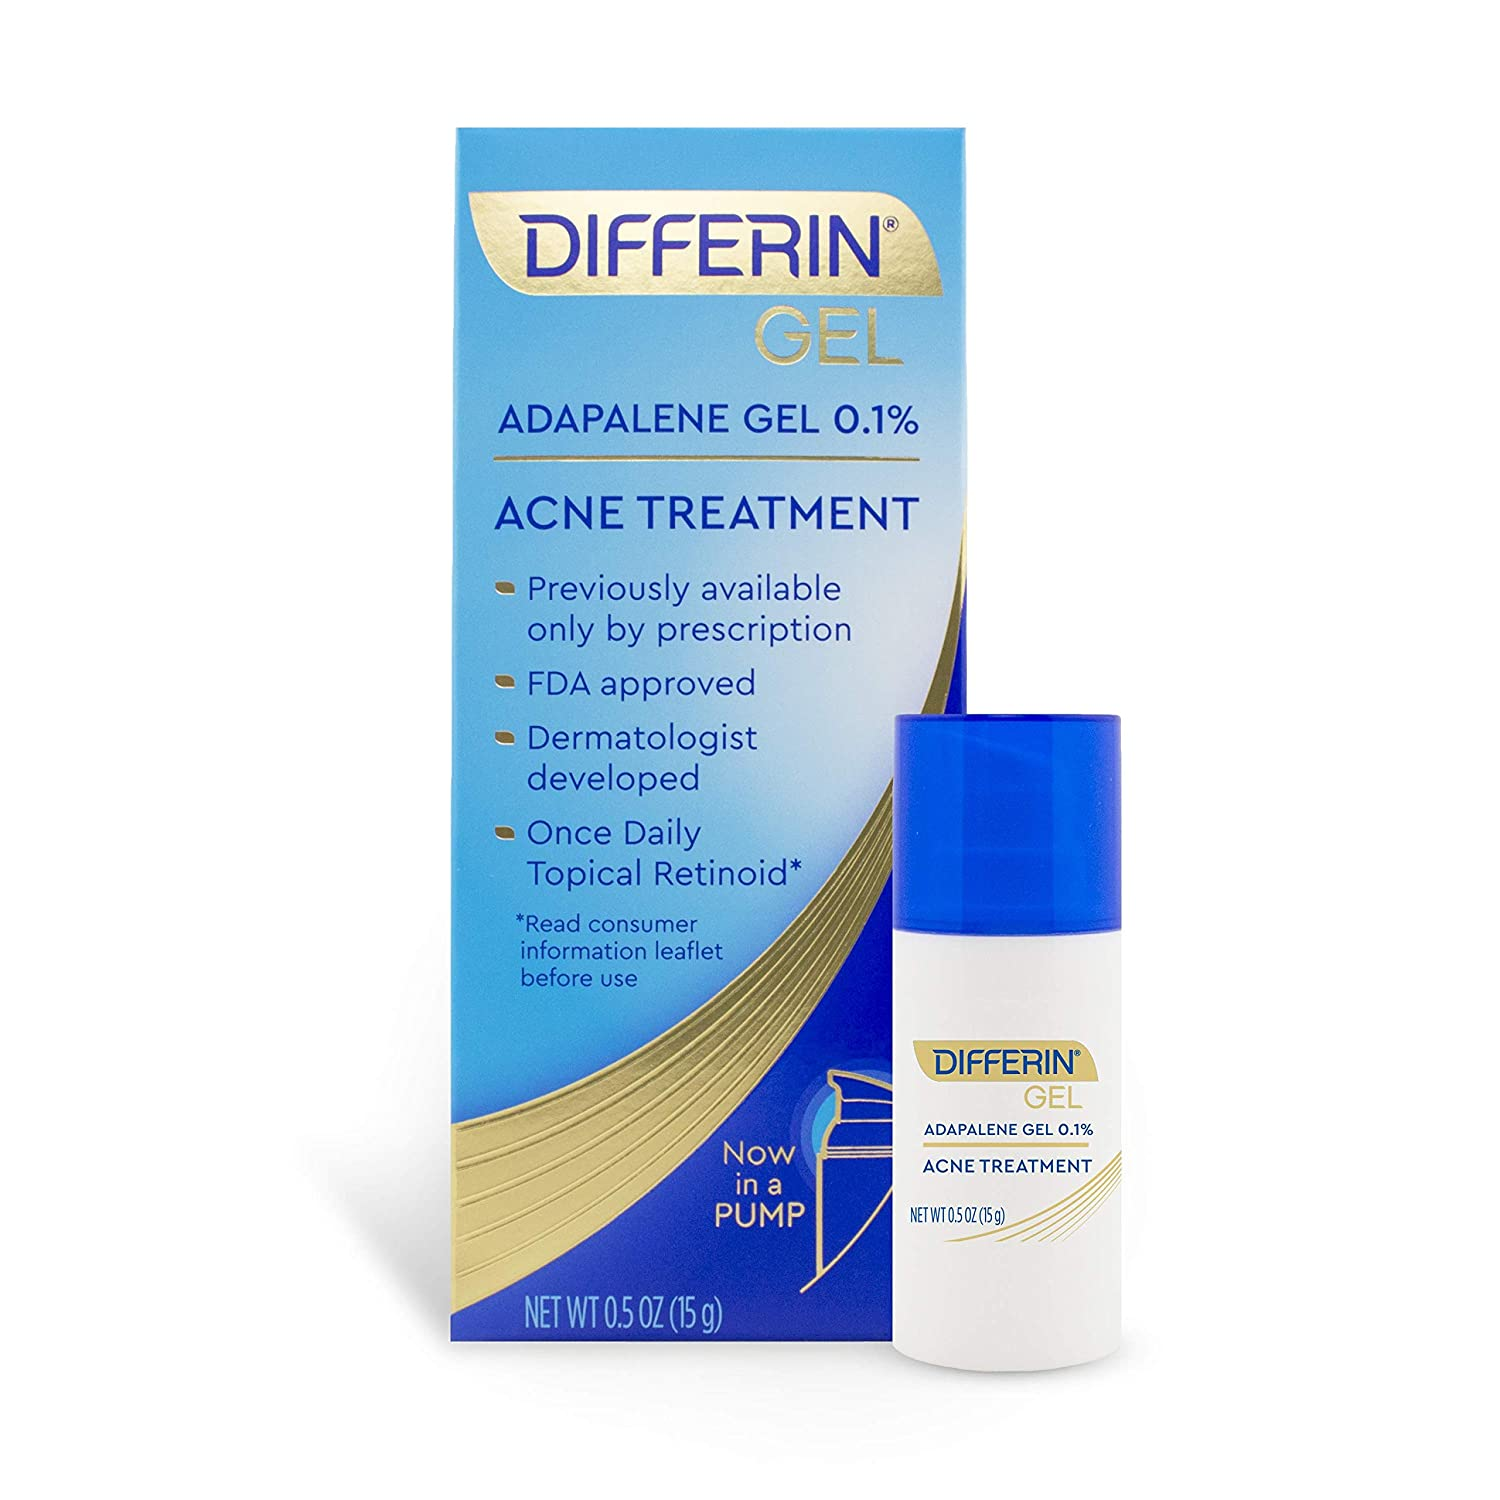 Differin Adapalene Gel 0.1% Acne treatment, 15g, 30-day Supply Pump